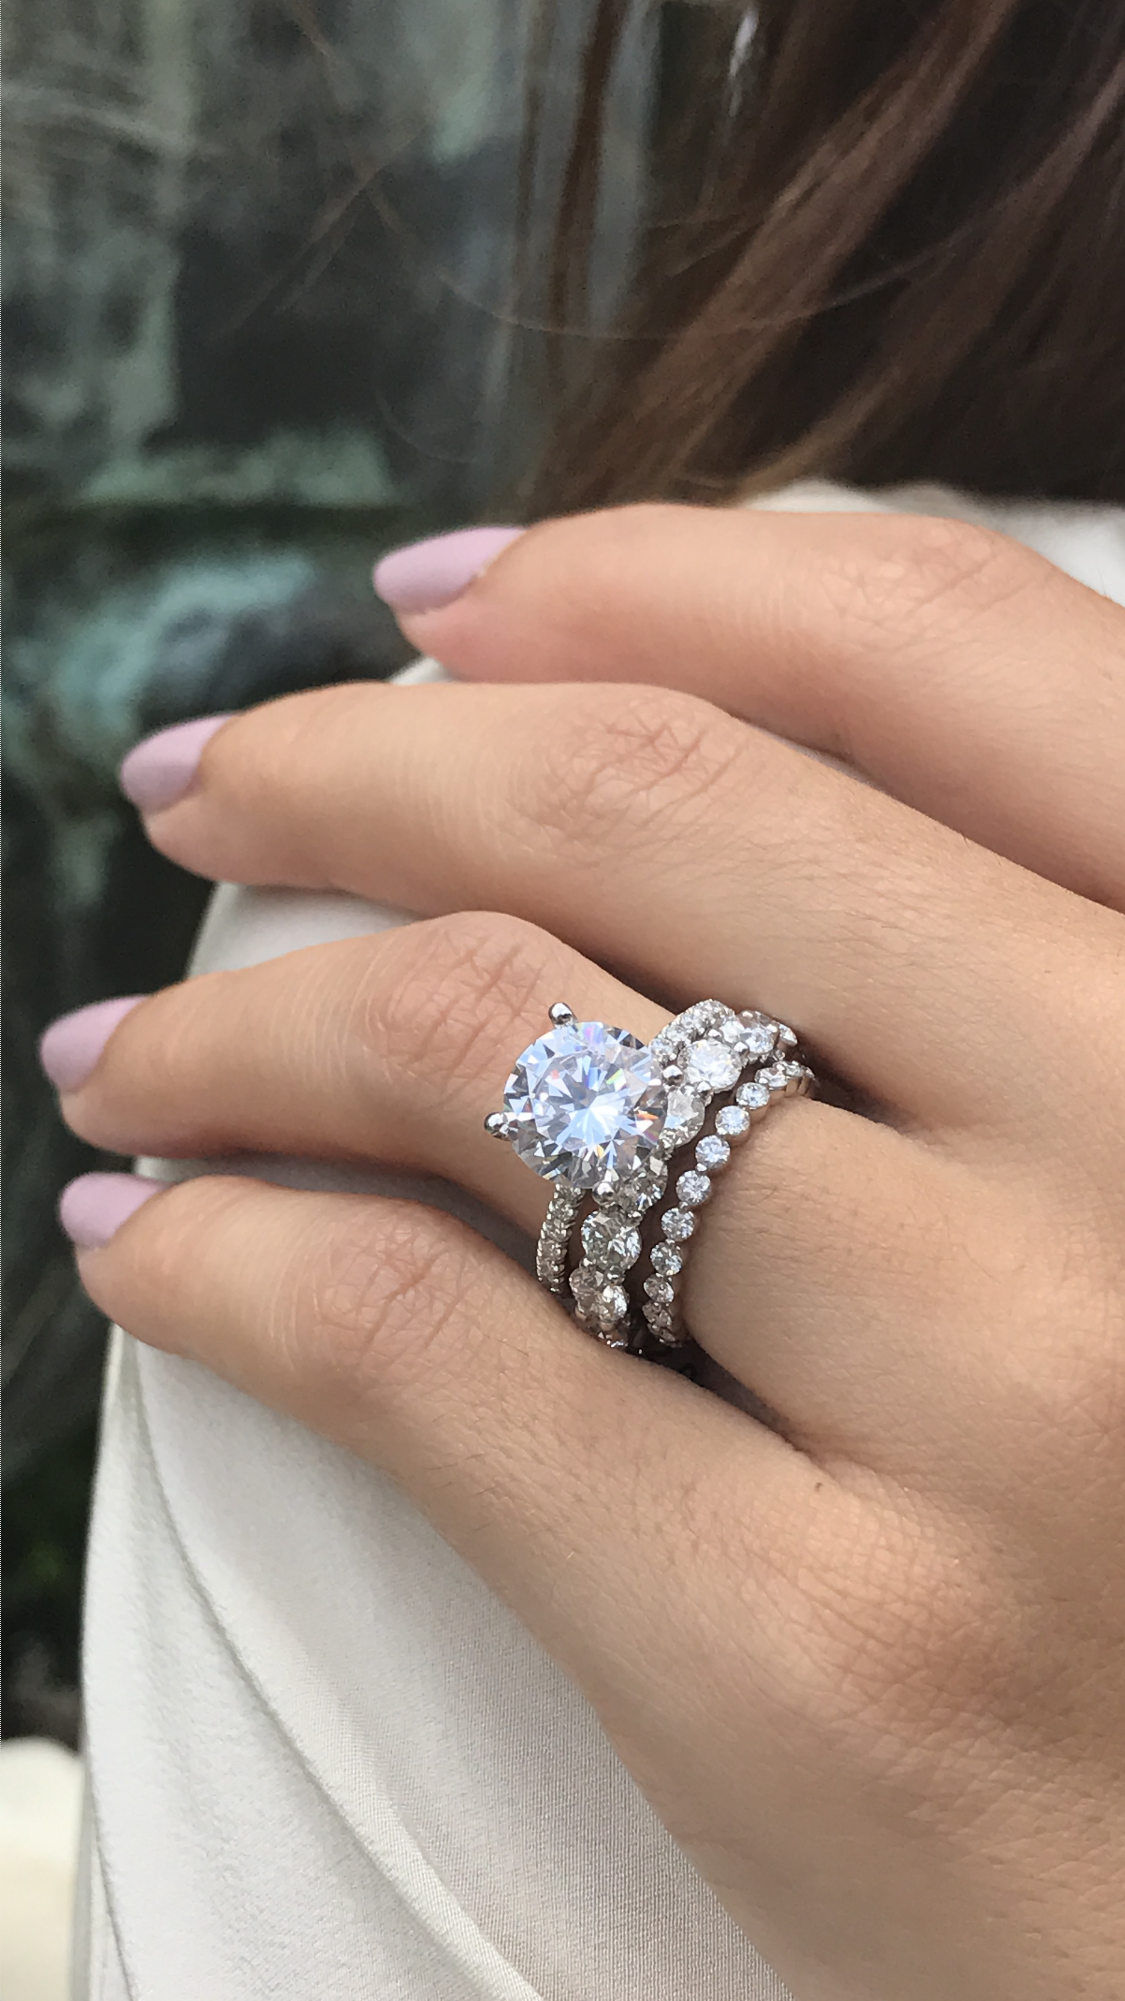 click to expand crystal ring present full item rock past trilogy engagement white gold rings